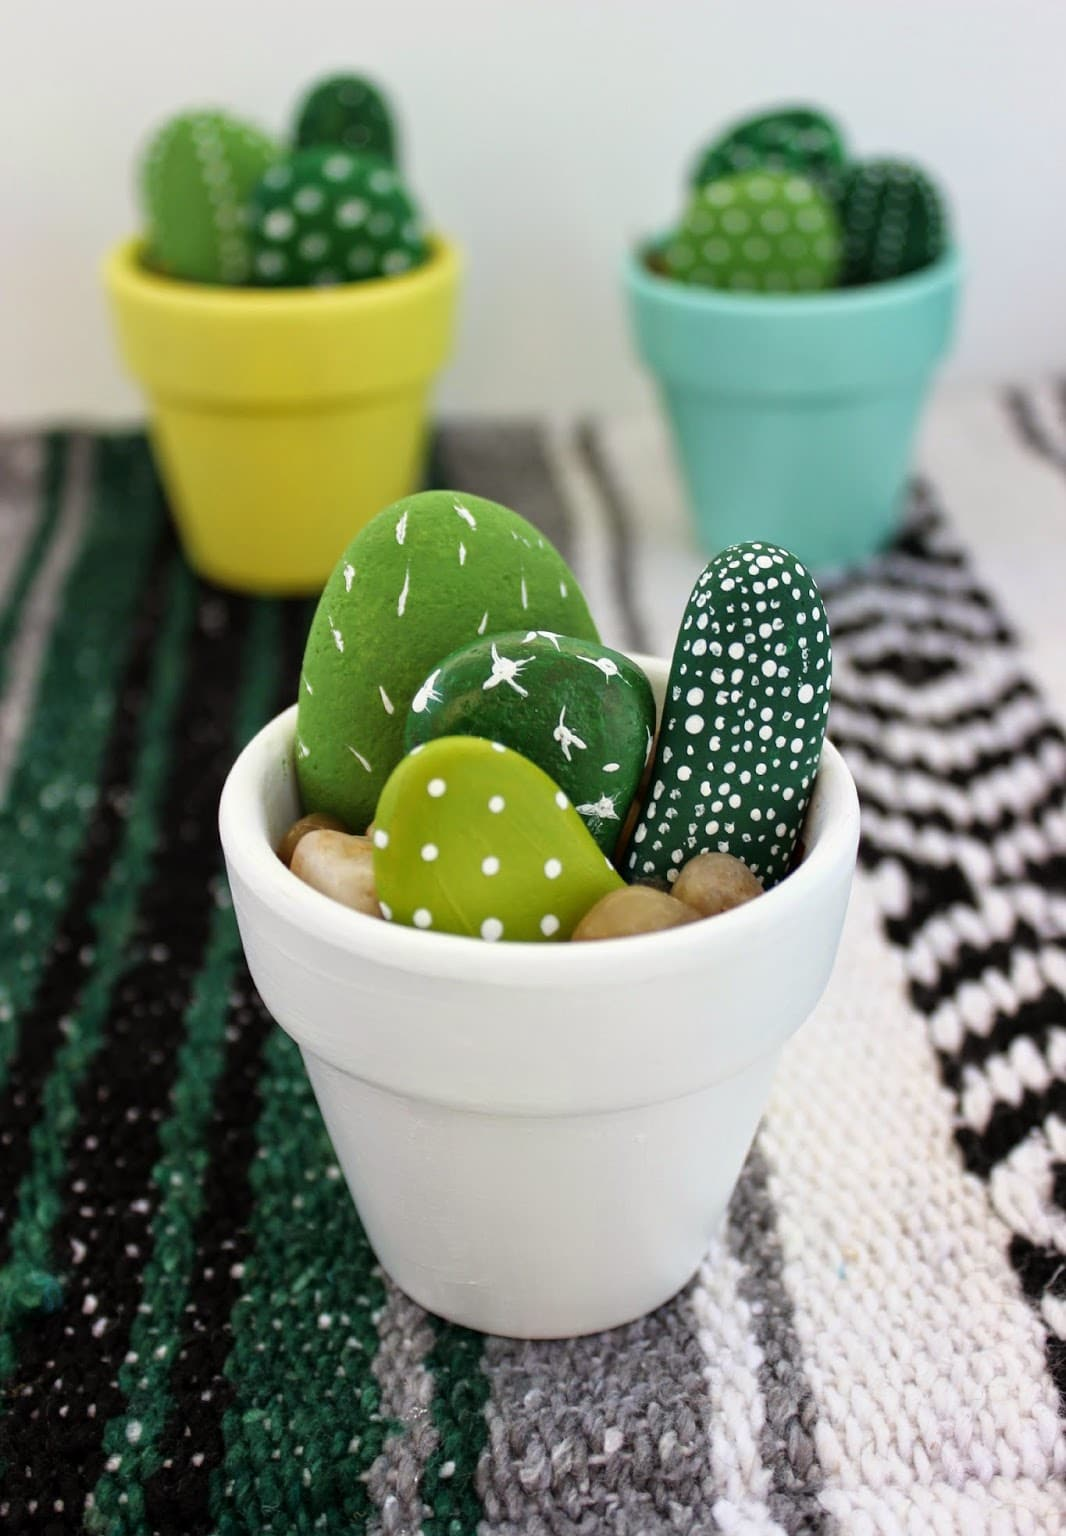 lemonbe-Ideas originales para decorar tus macetas-10